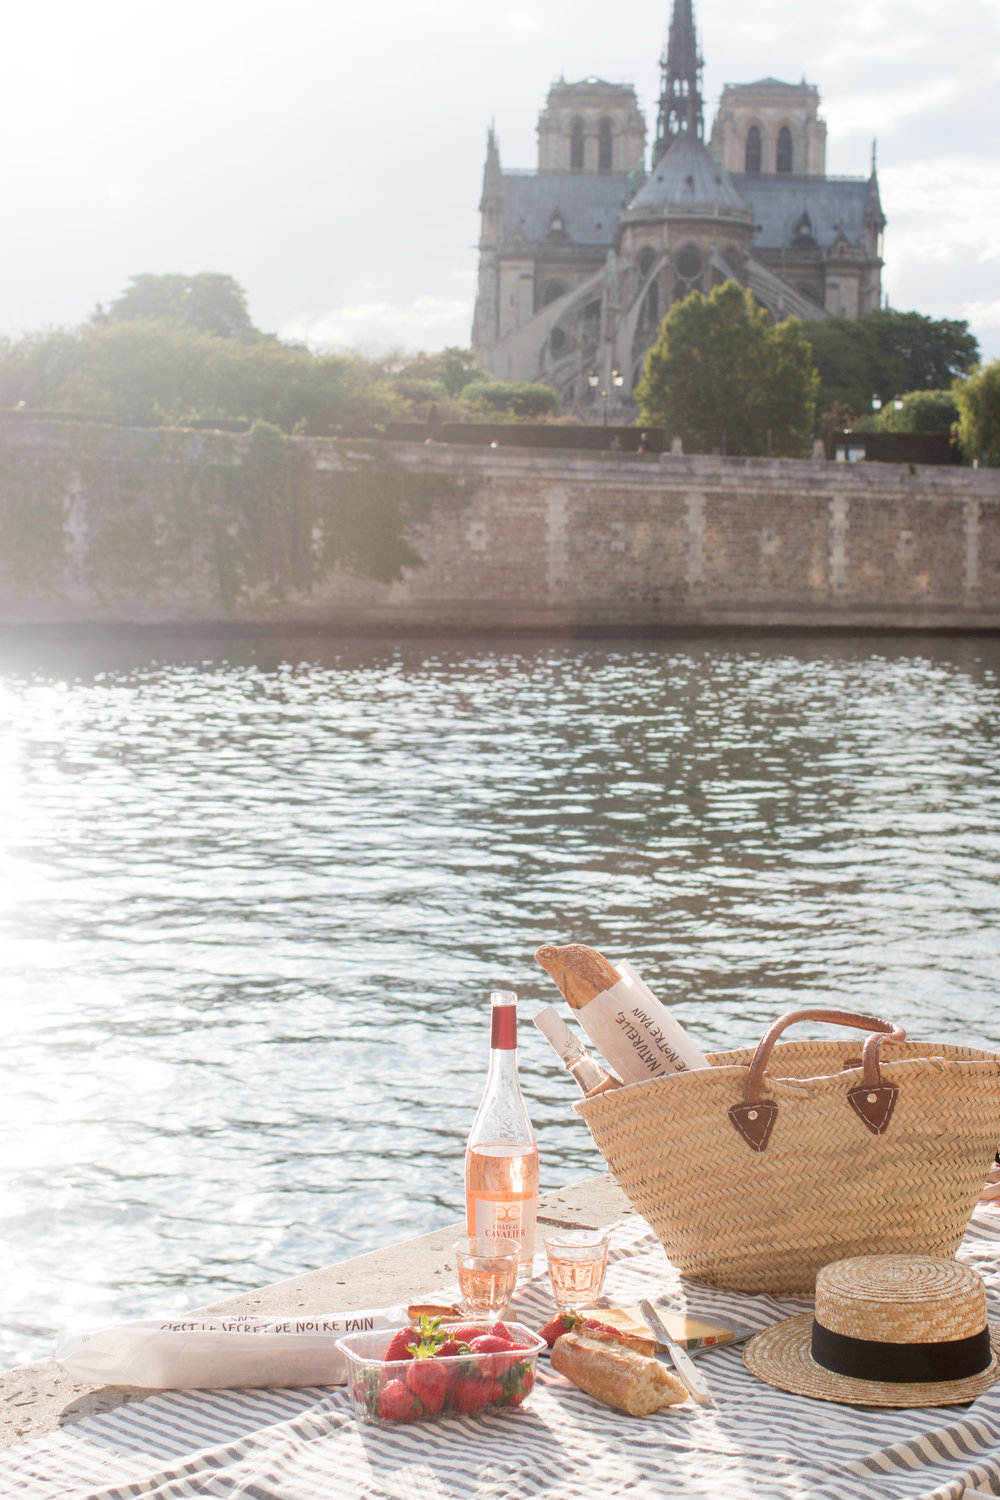 picnic on the seine overlooking notre dame paris, france